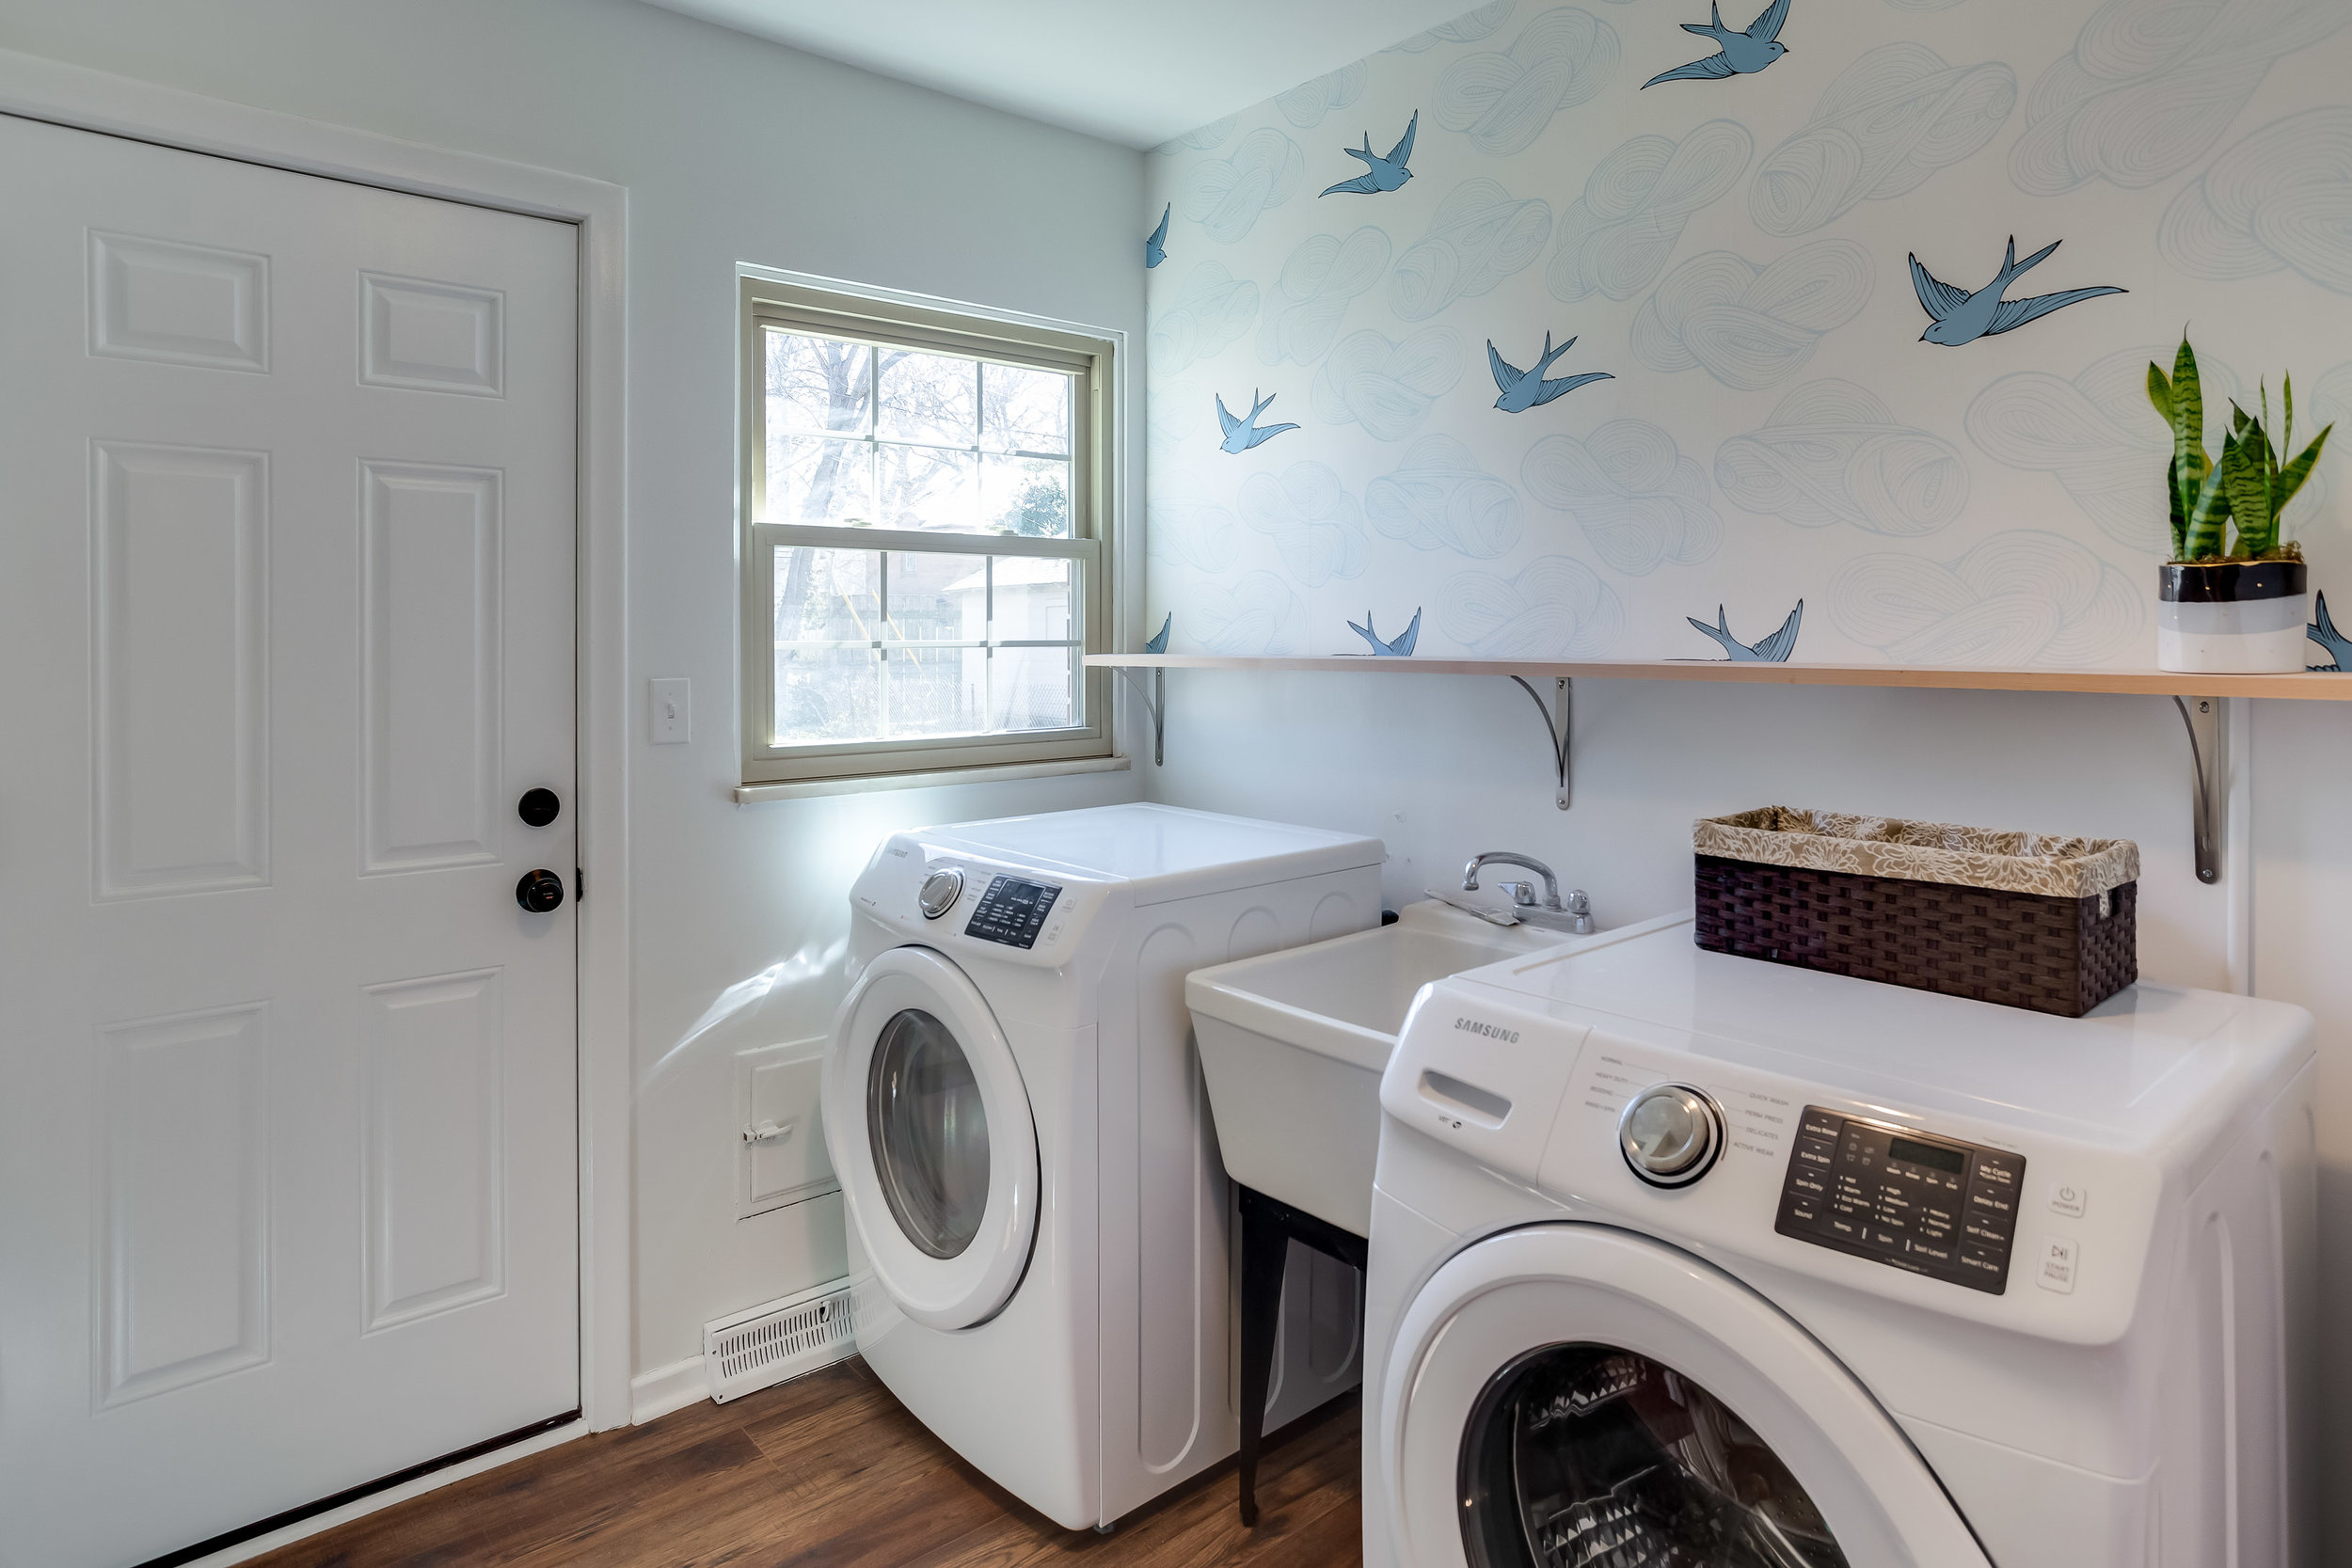 After, the laundry room is clean, functional and pleasing to the eye.